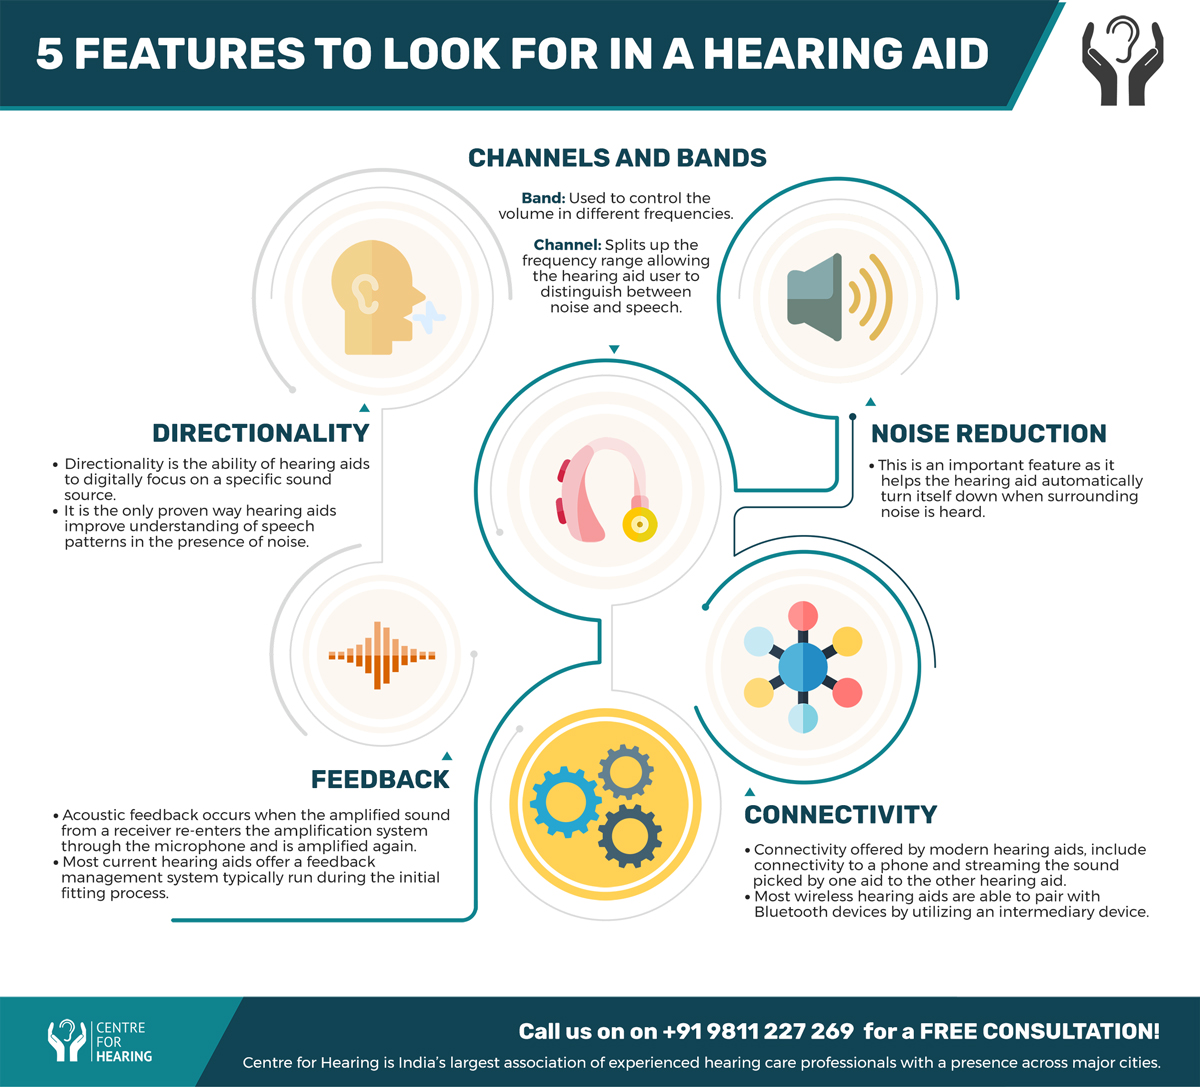 Features-to-look-for-in-a-hearing-aid